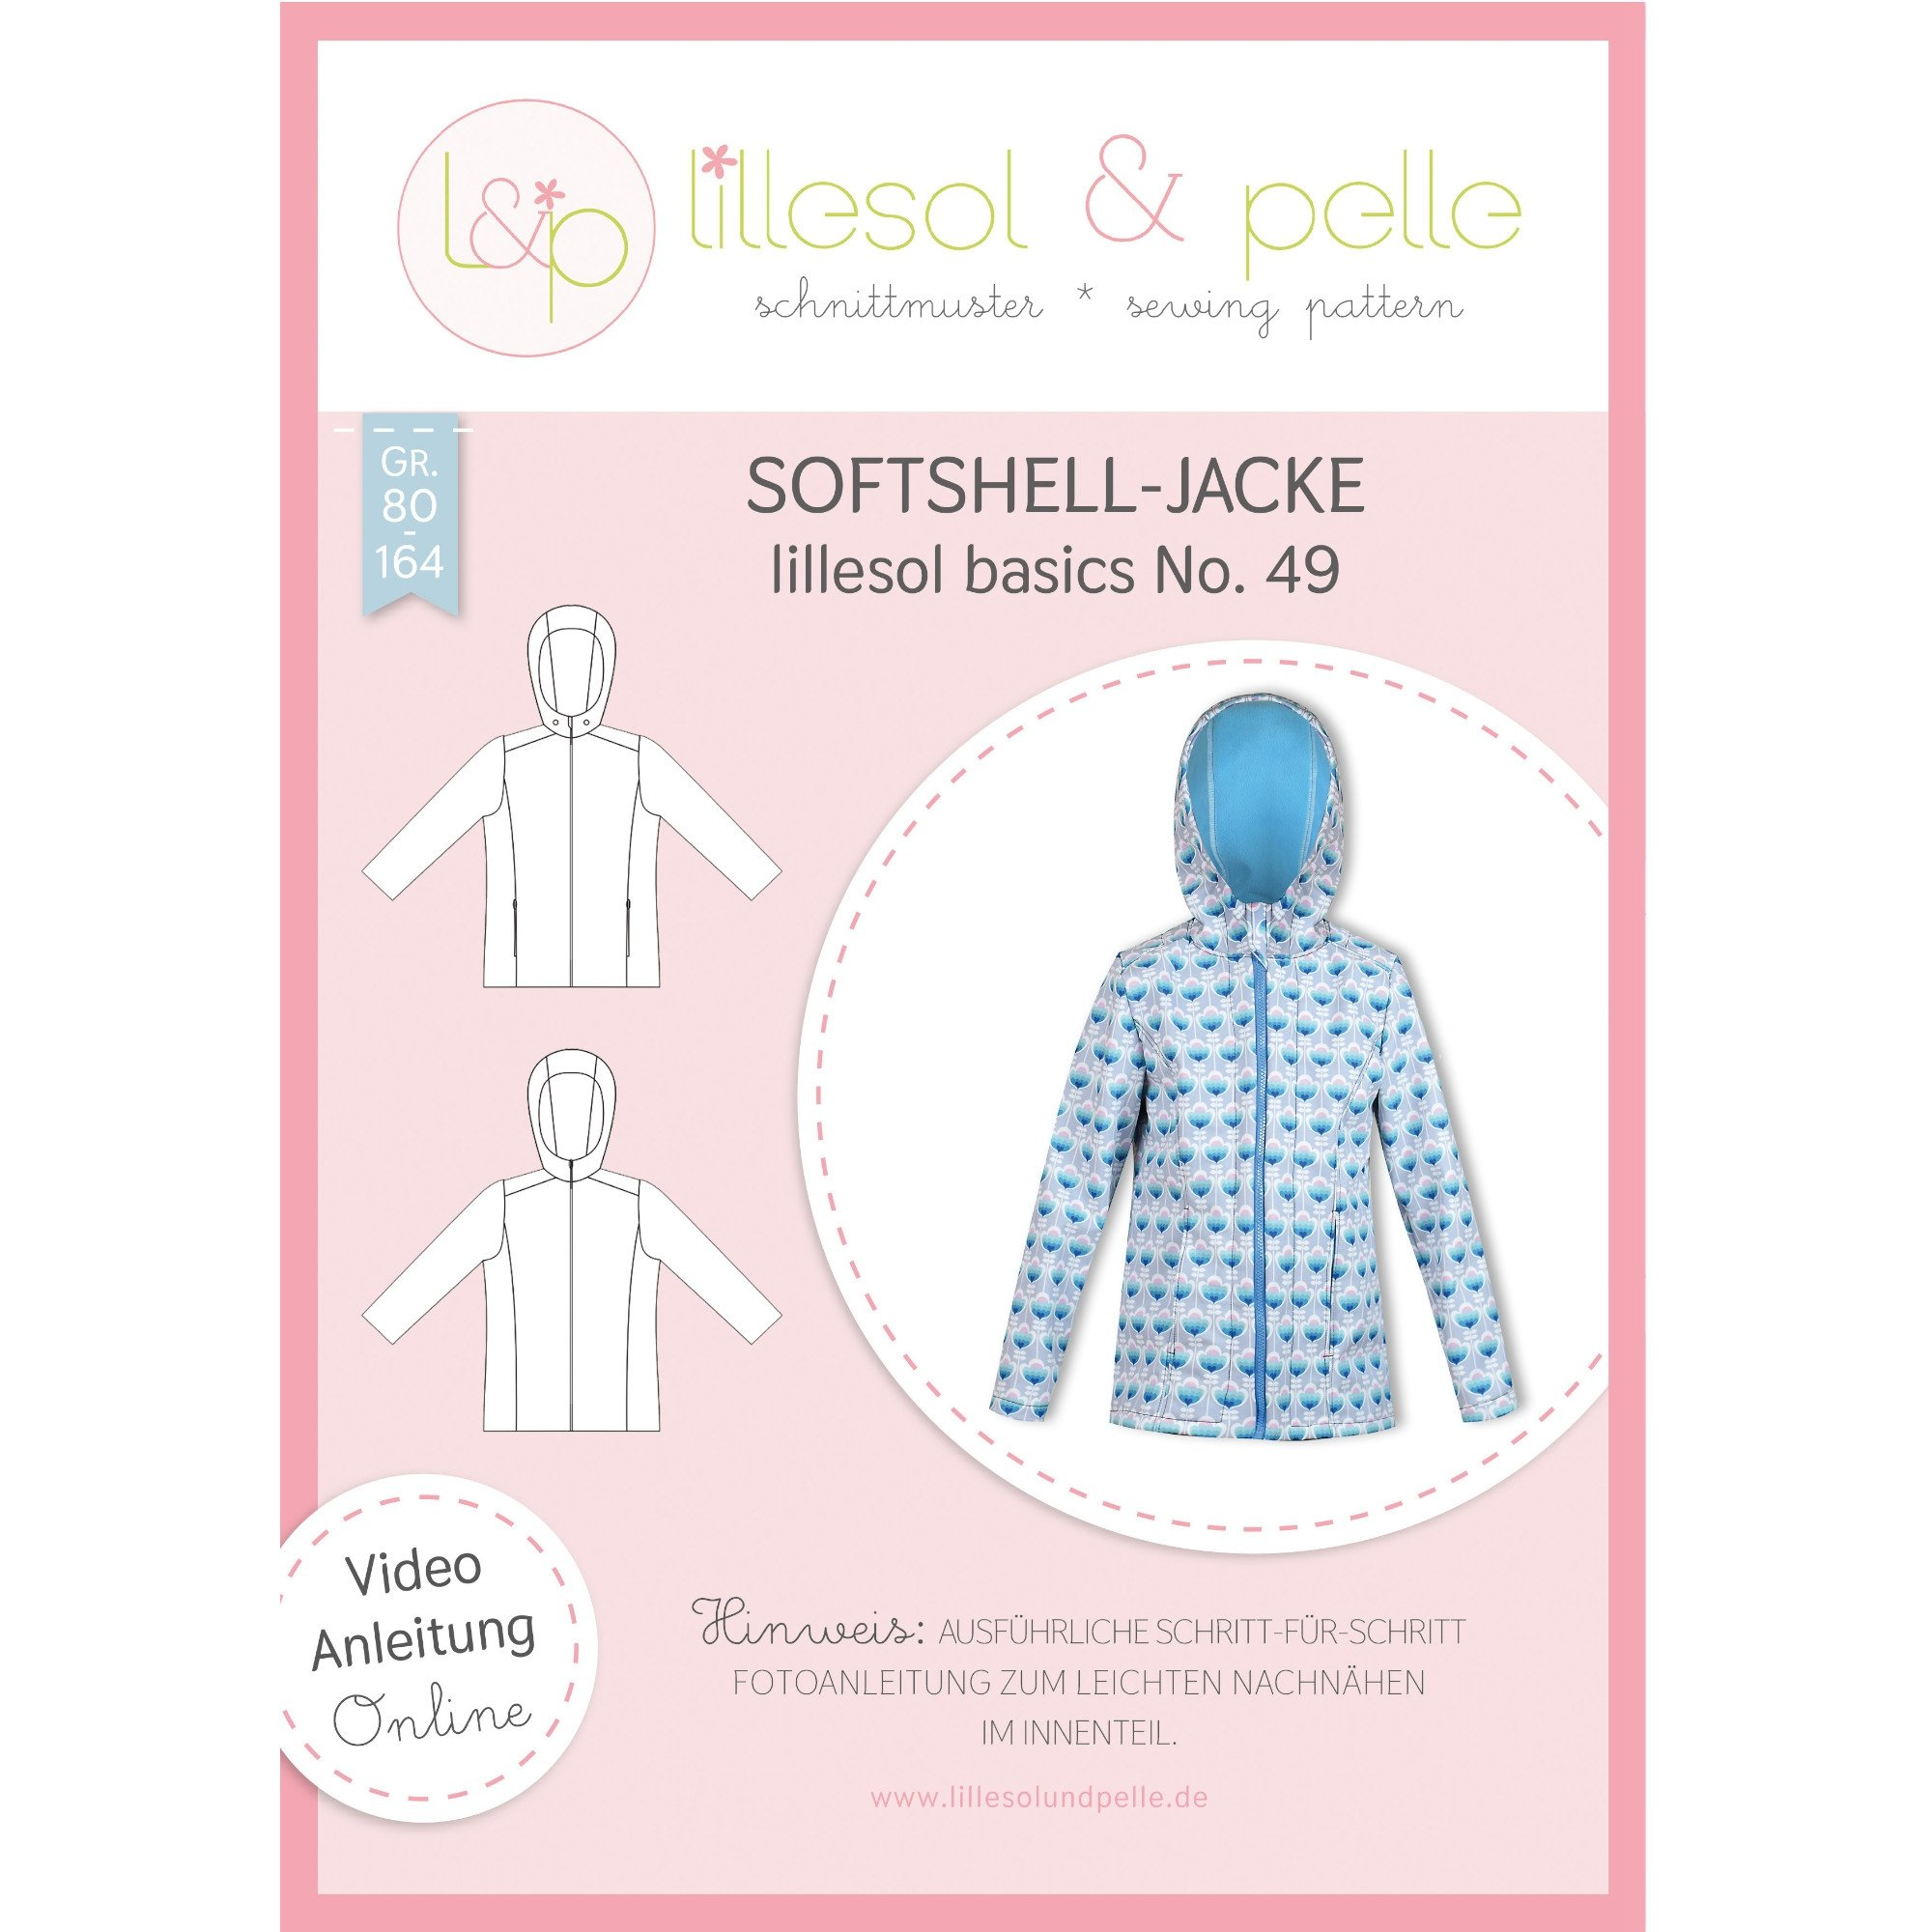 Lillesol Basic N0. 49 Softshelljacke Kinder Pap...